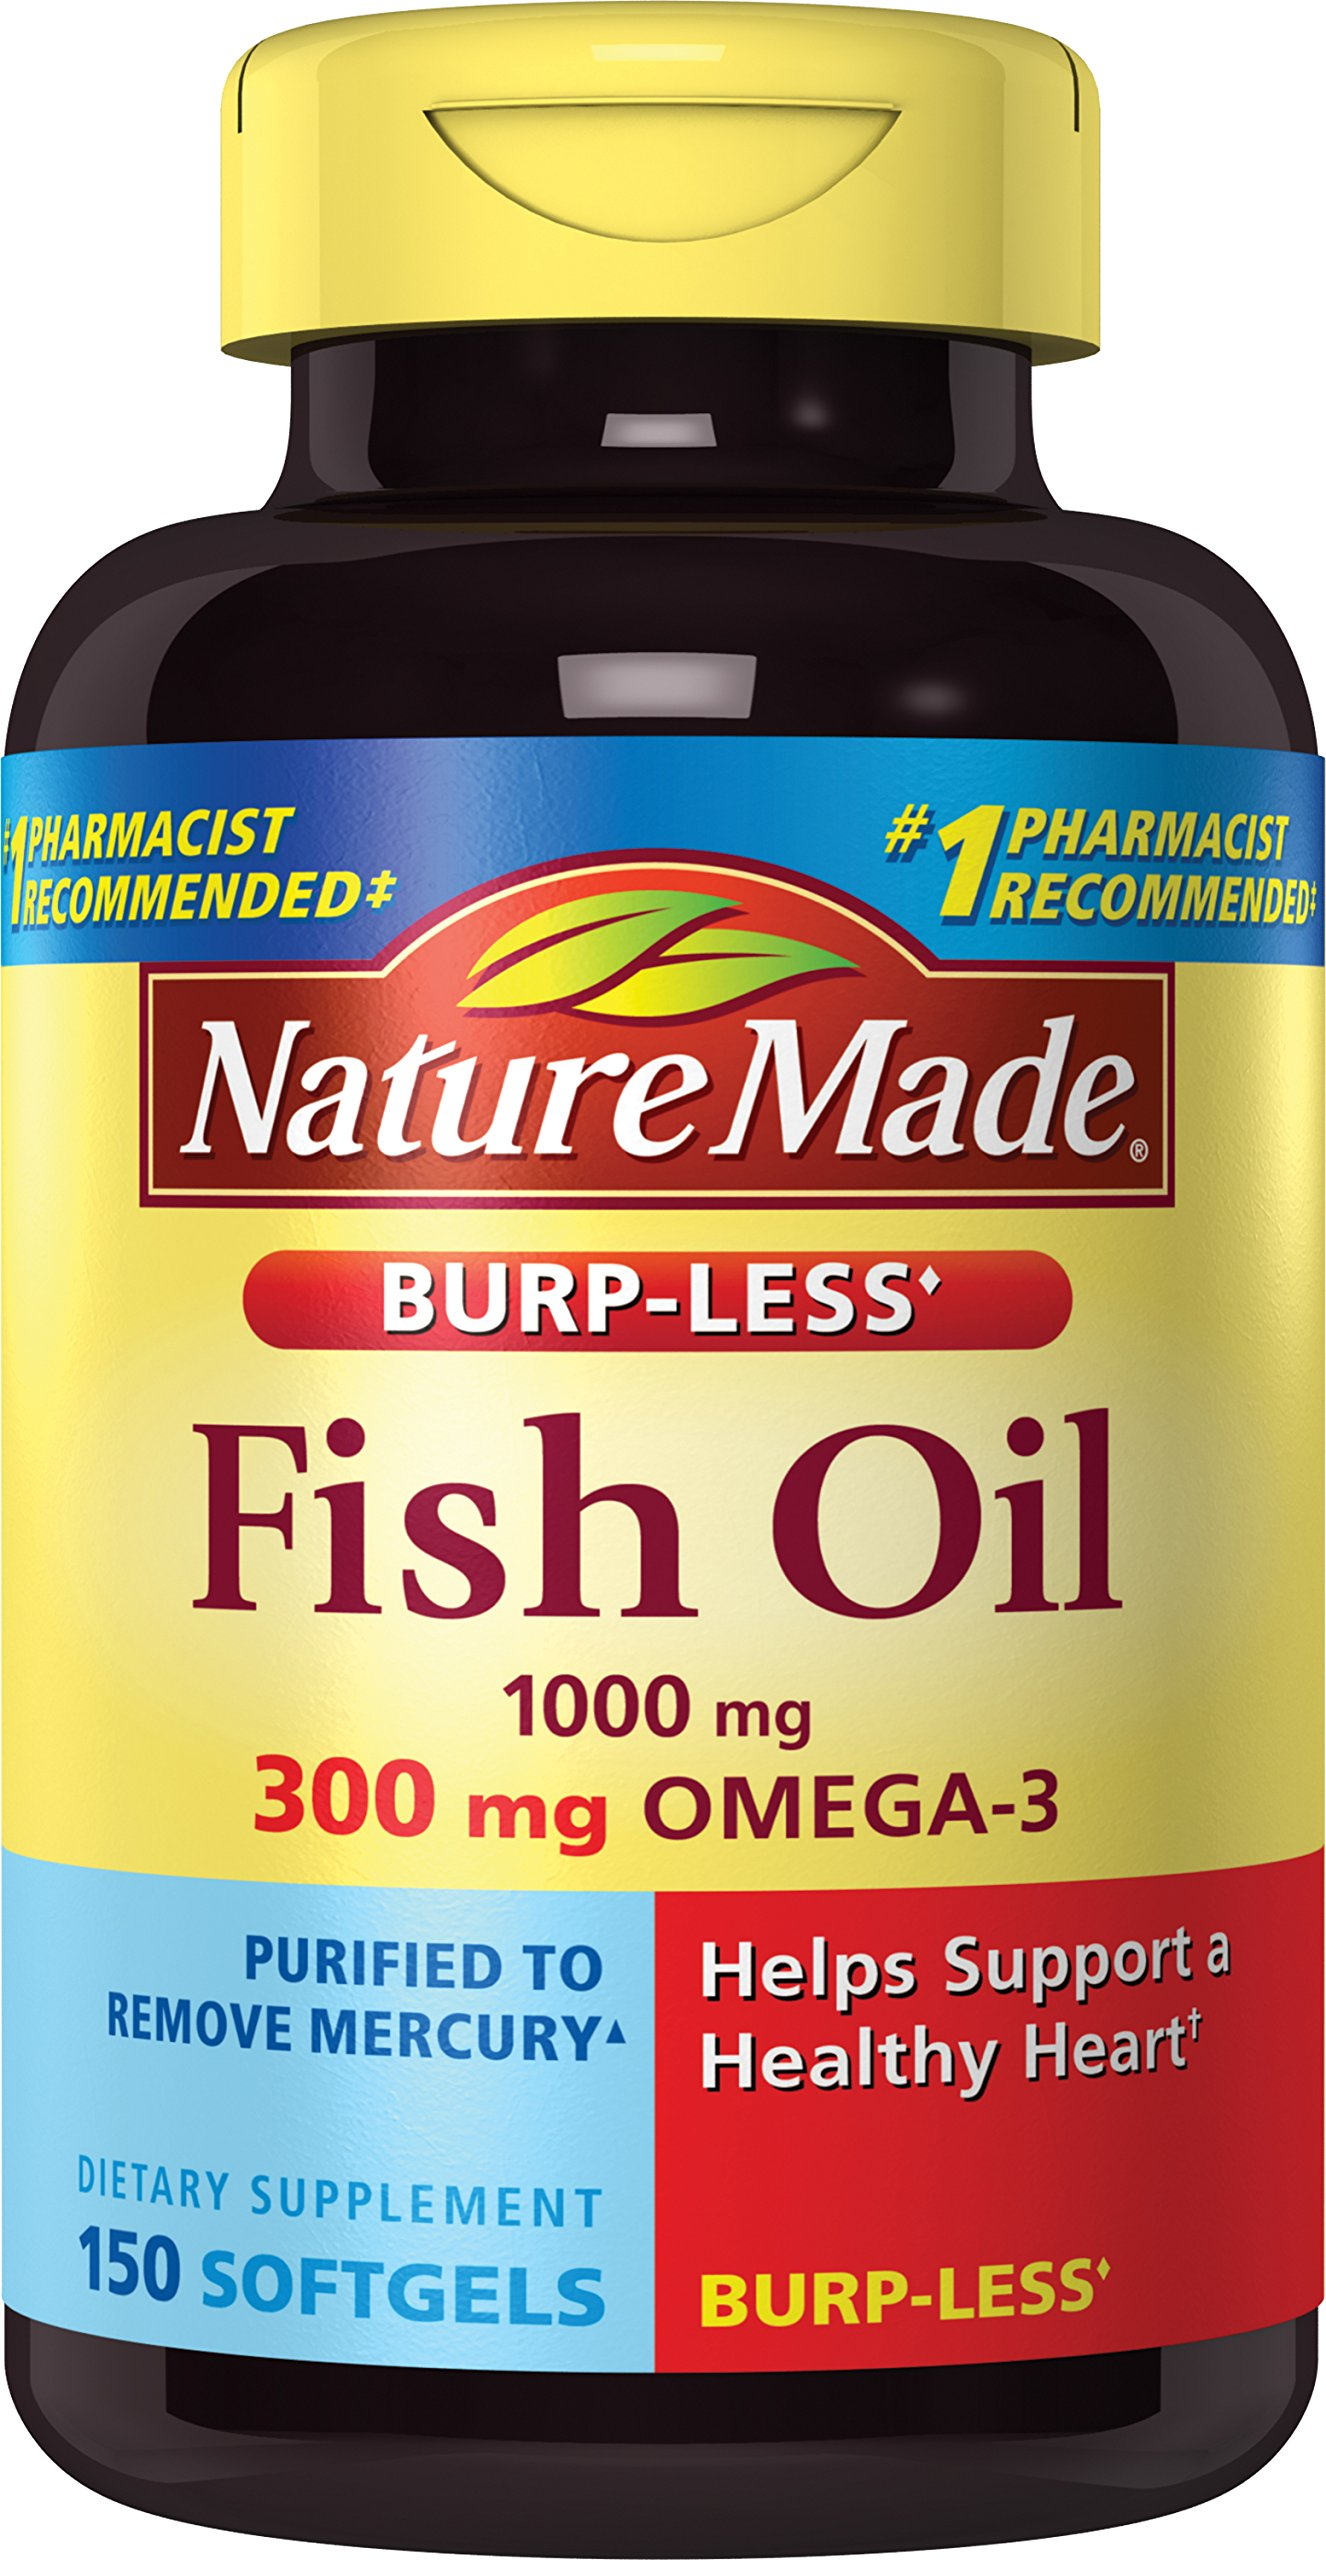 One a day women 39 s multivitamin 250 count for What is omega 3 fish oil good for